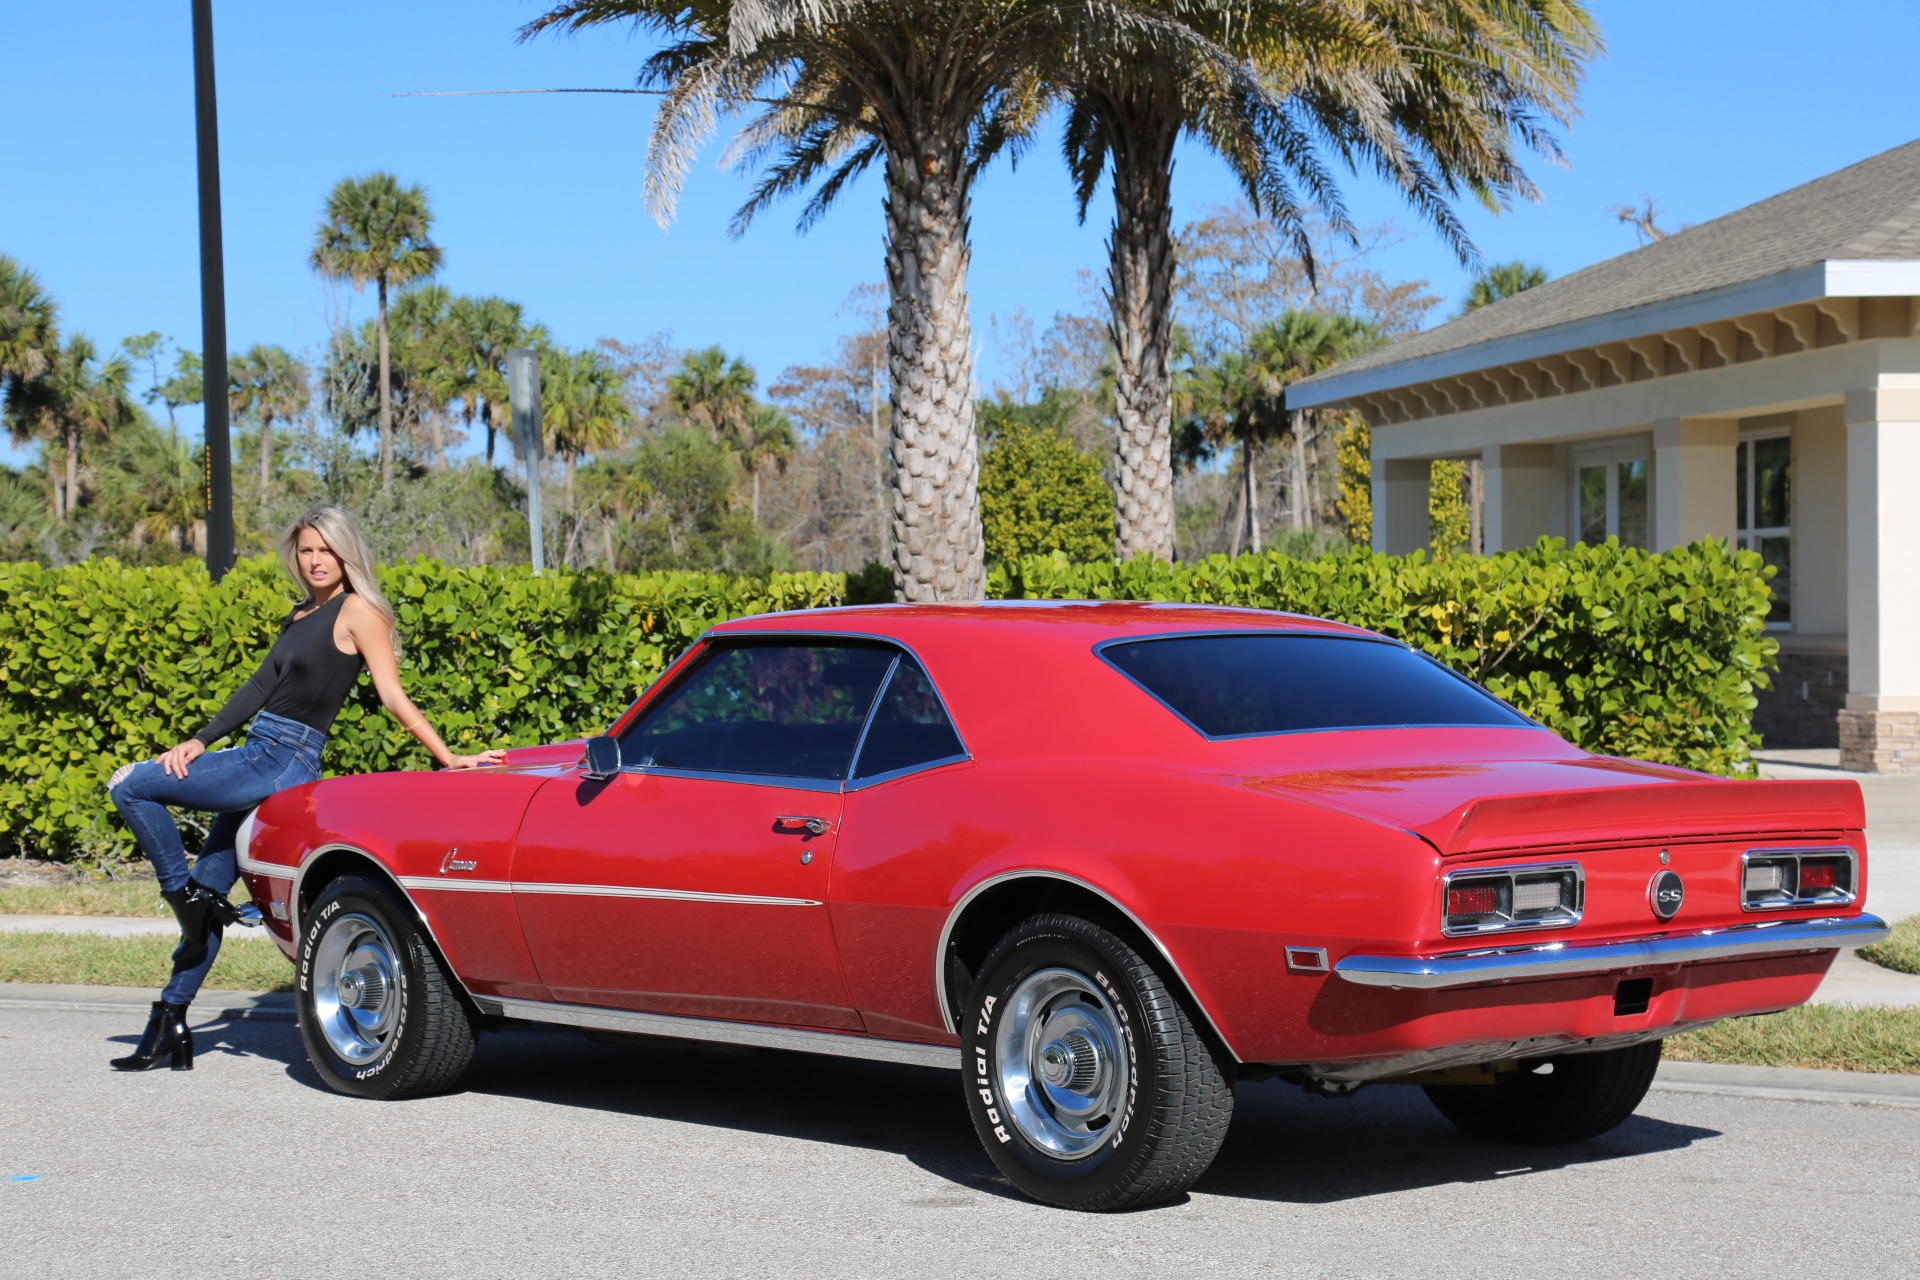 Used 1968 Chevrolet Camaro Camaro V8 350 Auto for sale Sold at Muscle Cars for Sale Inc. in Fort Myers FL 33912 3